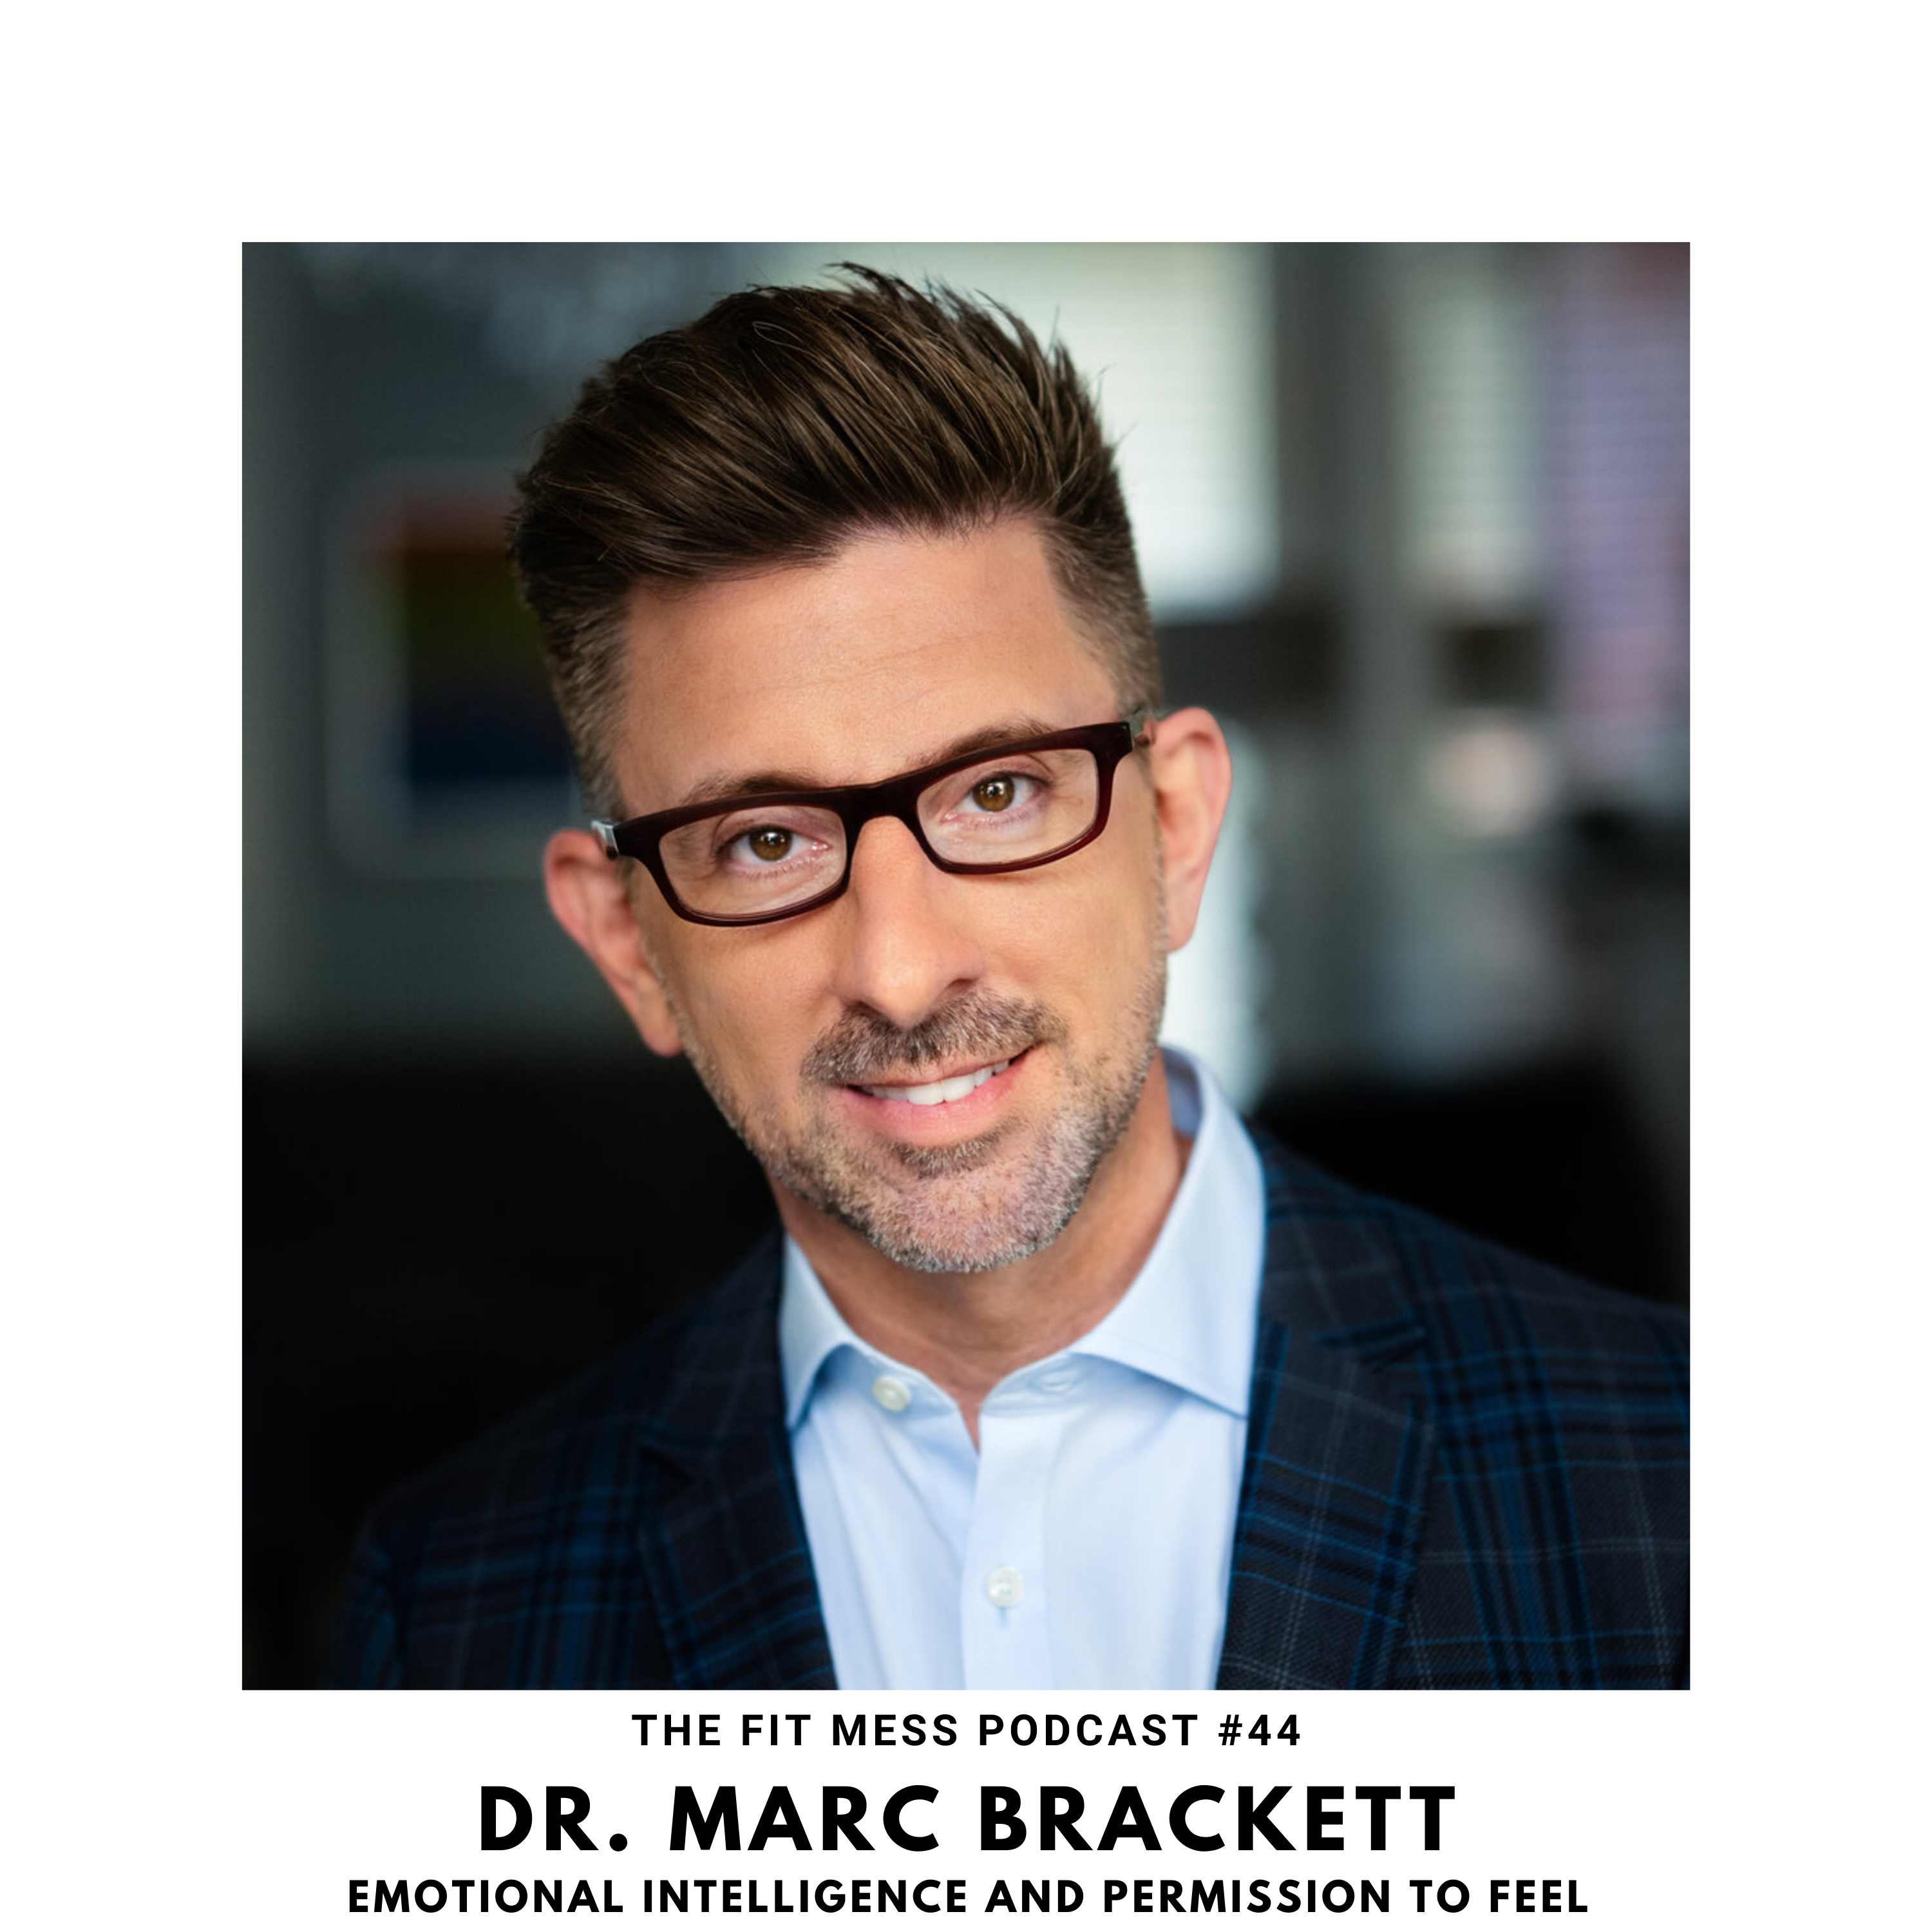 Dr. Marc Brackett on Emotional Intelligence and Permission to Feel